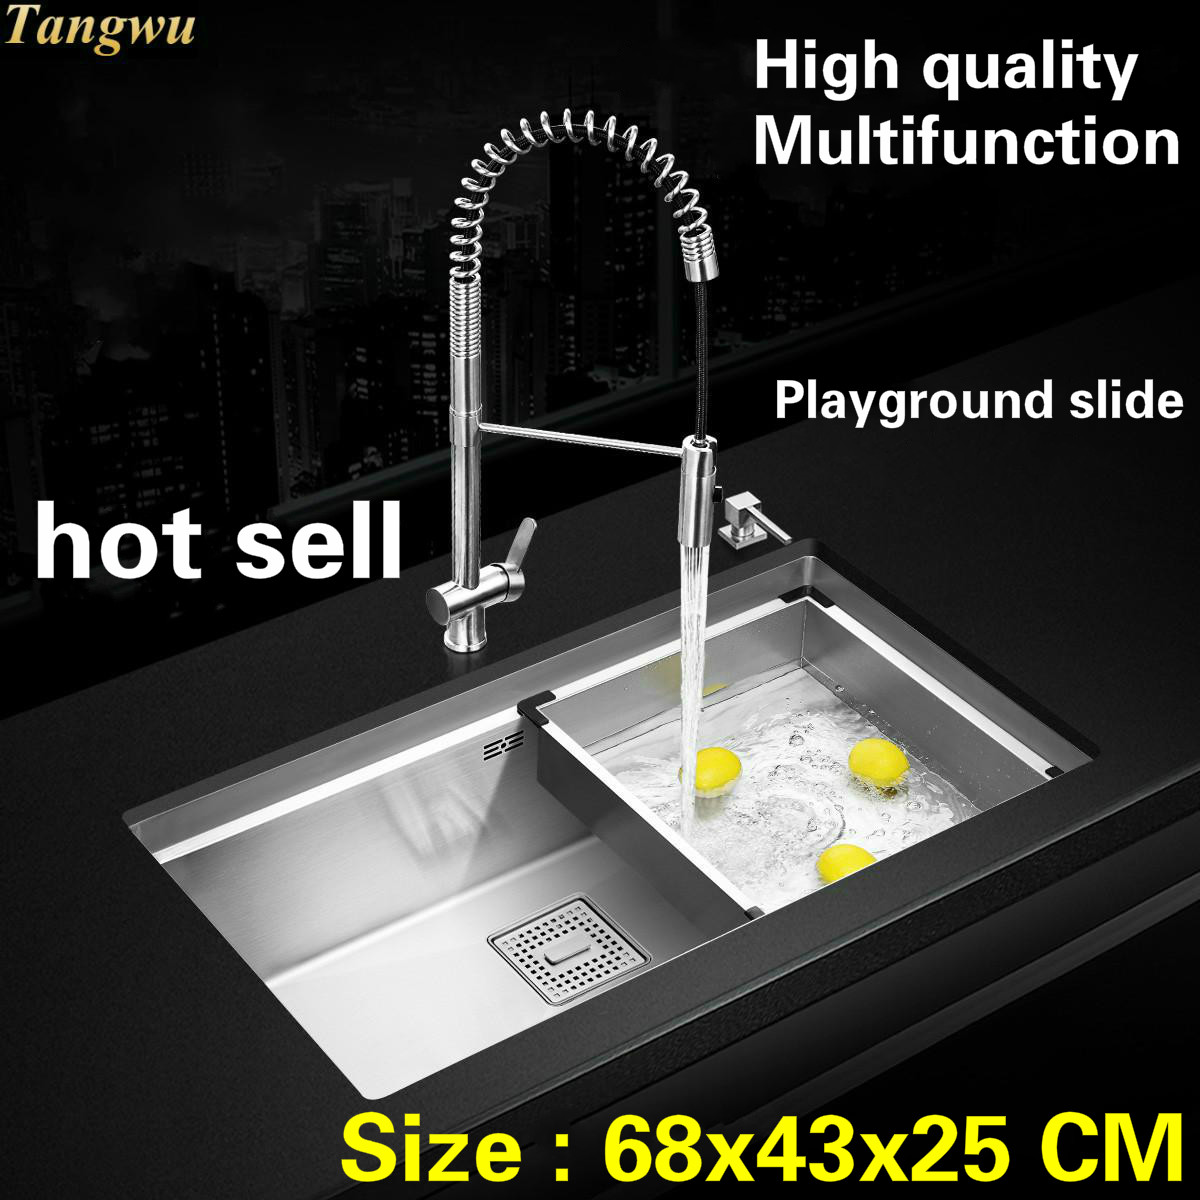 Tangwu High-grade Kitchen Sink 4 Mm Thick Food-grade 304 Stainless Steel Durable Manual Single Slot 68x43x25 CM